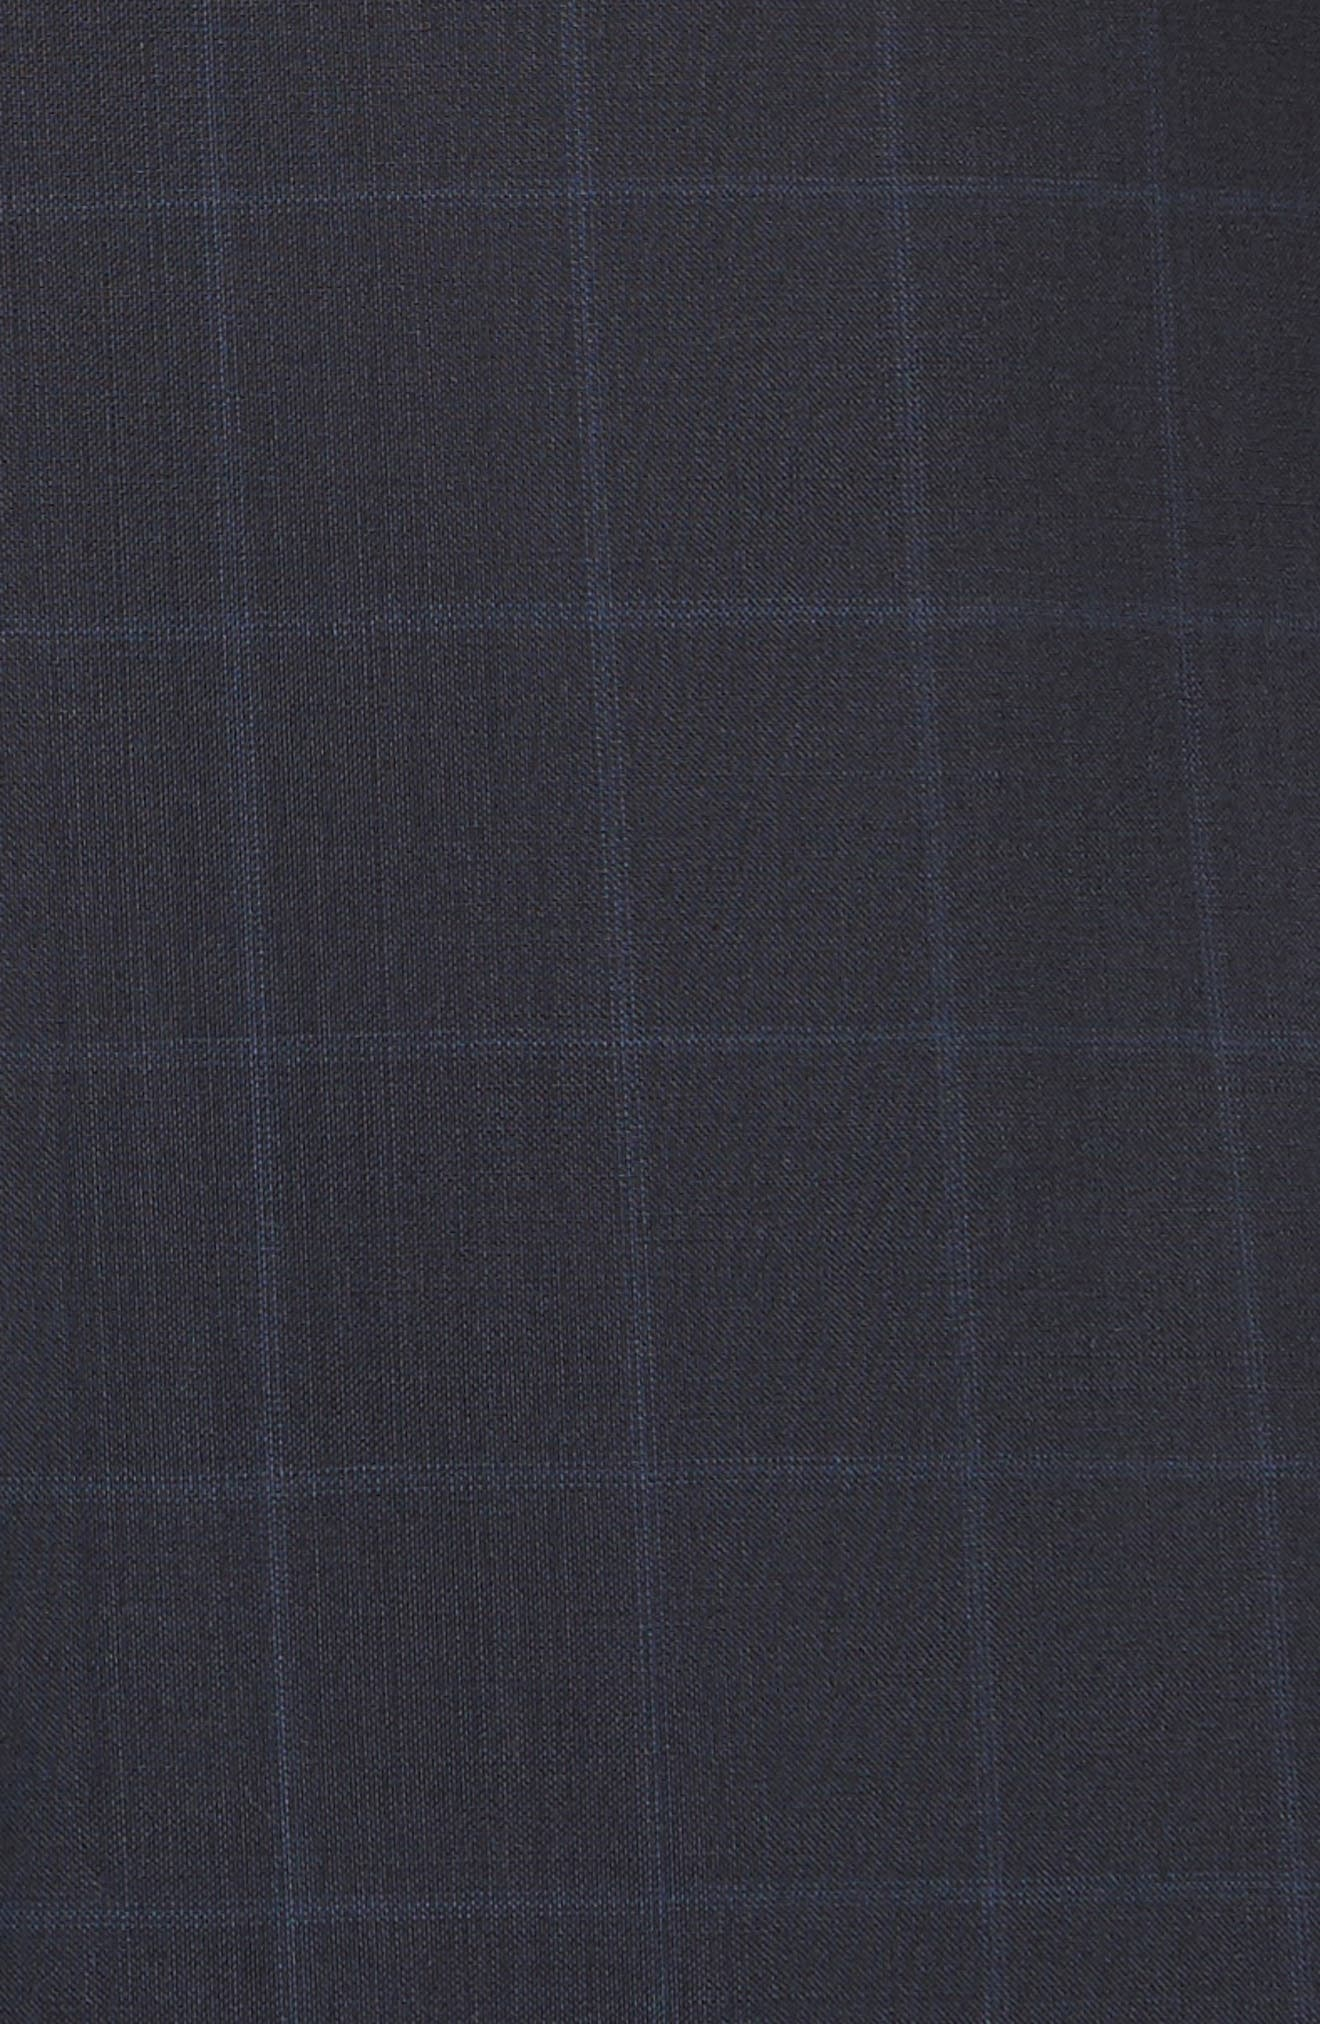 Classic Fit Windowpane Wool Suit,                             Alternate thumbnail 6, color,                             Navy Check